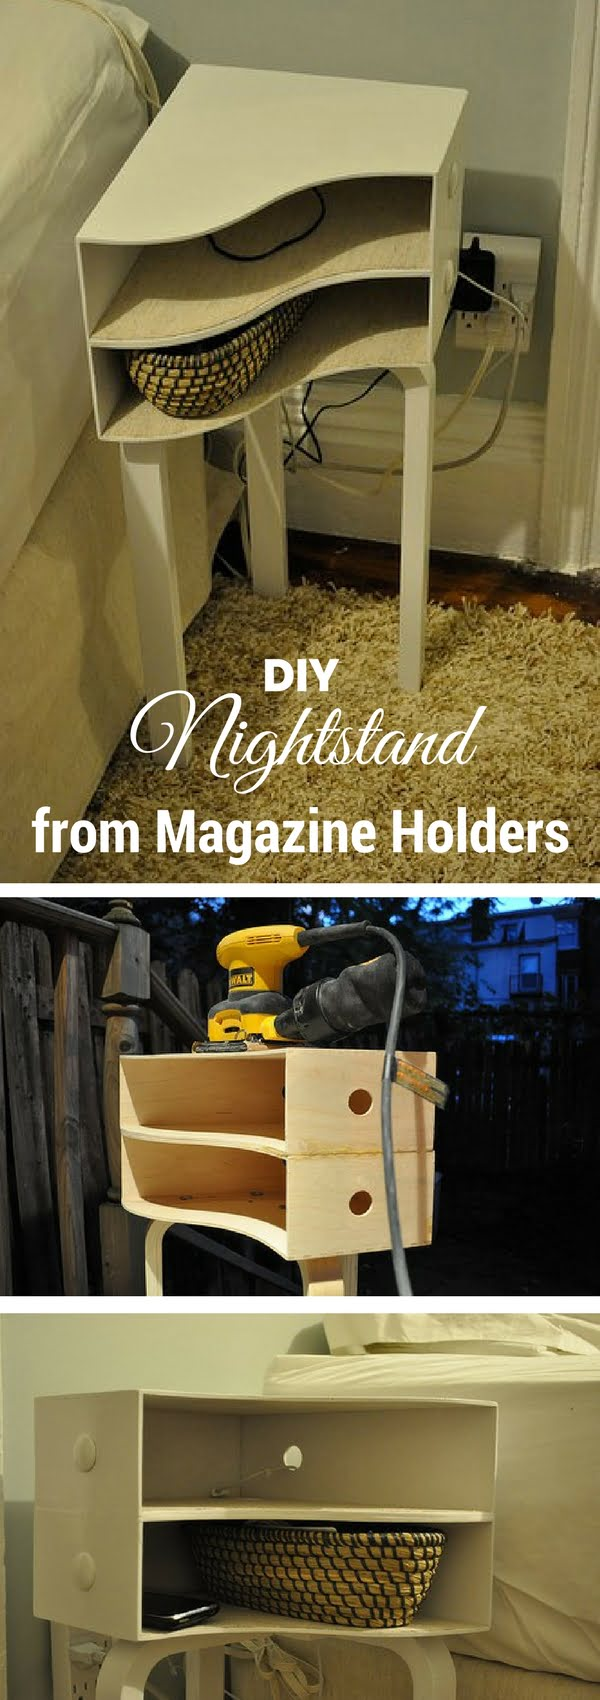 12 Easy DIY Nightstands That You Can Build on a Budget - Check out how to build an easy DIY nightstand from wooden magazine holders